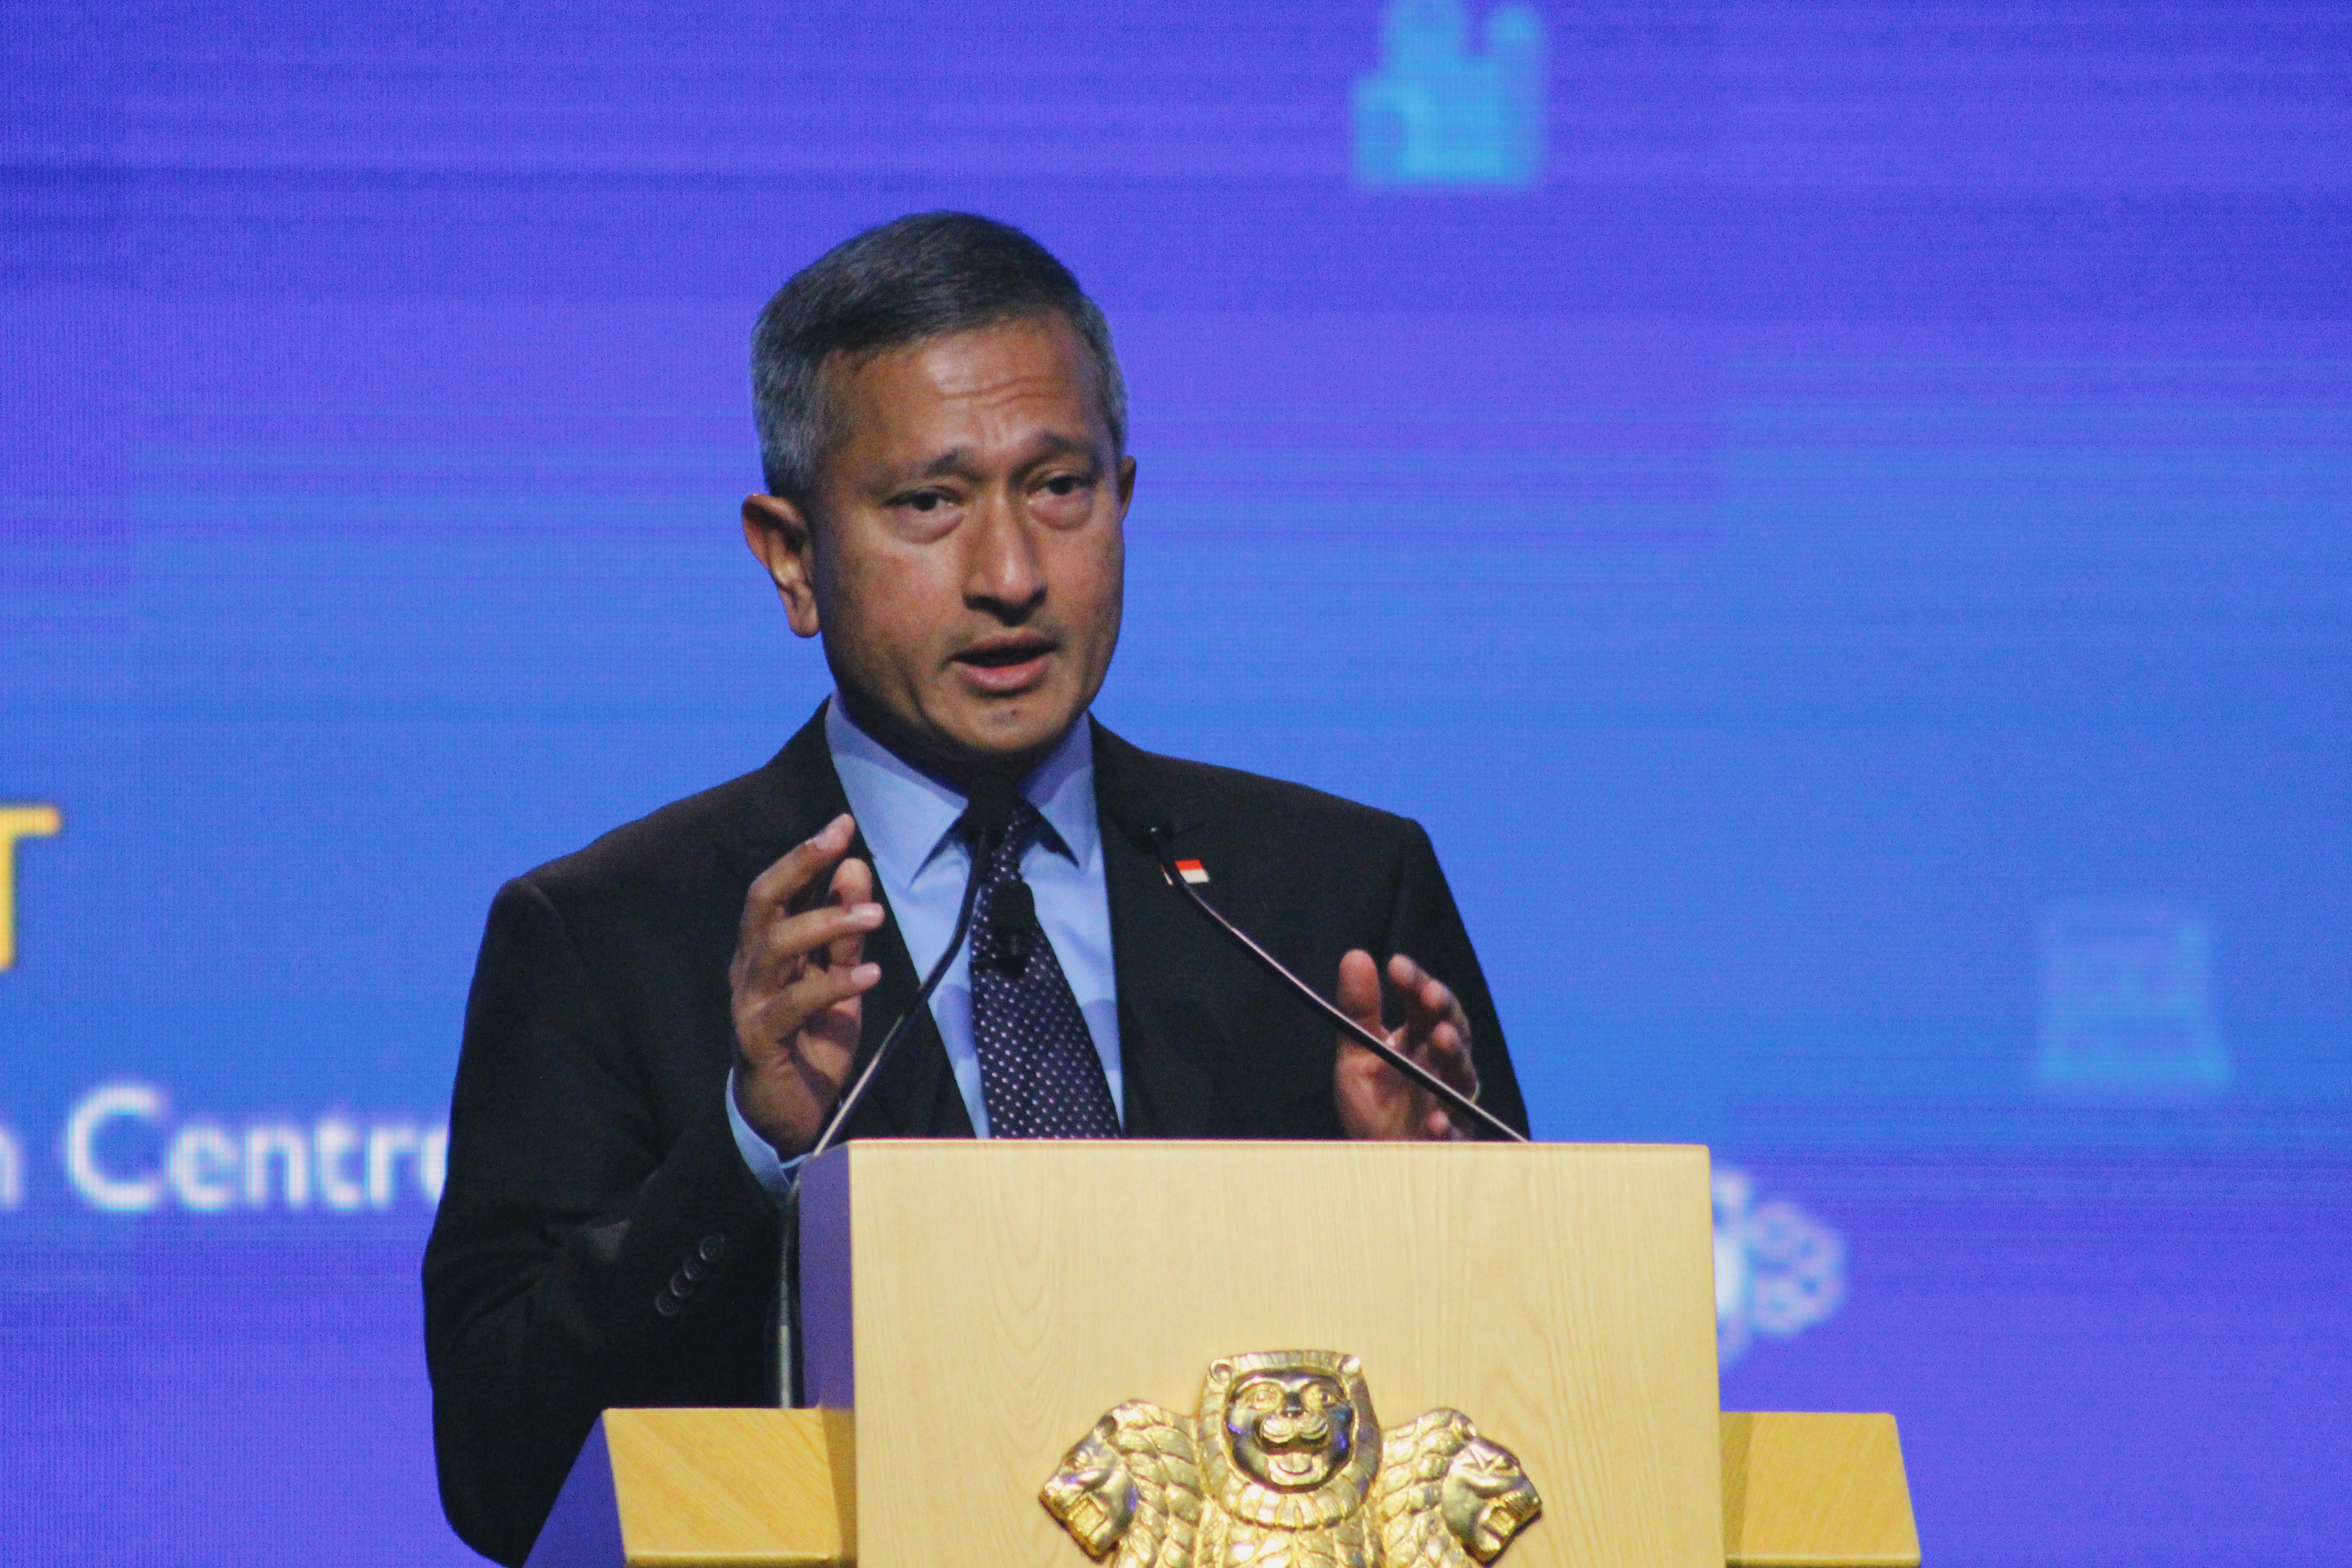 Singapore Minister for Foreign Affairs Vivian Balakrishnan has urged India and China to overcome their differences. Photo courtesy: Connected to India